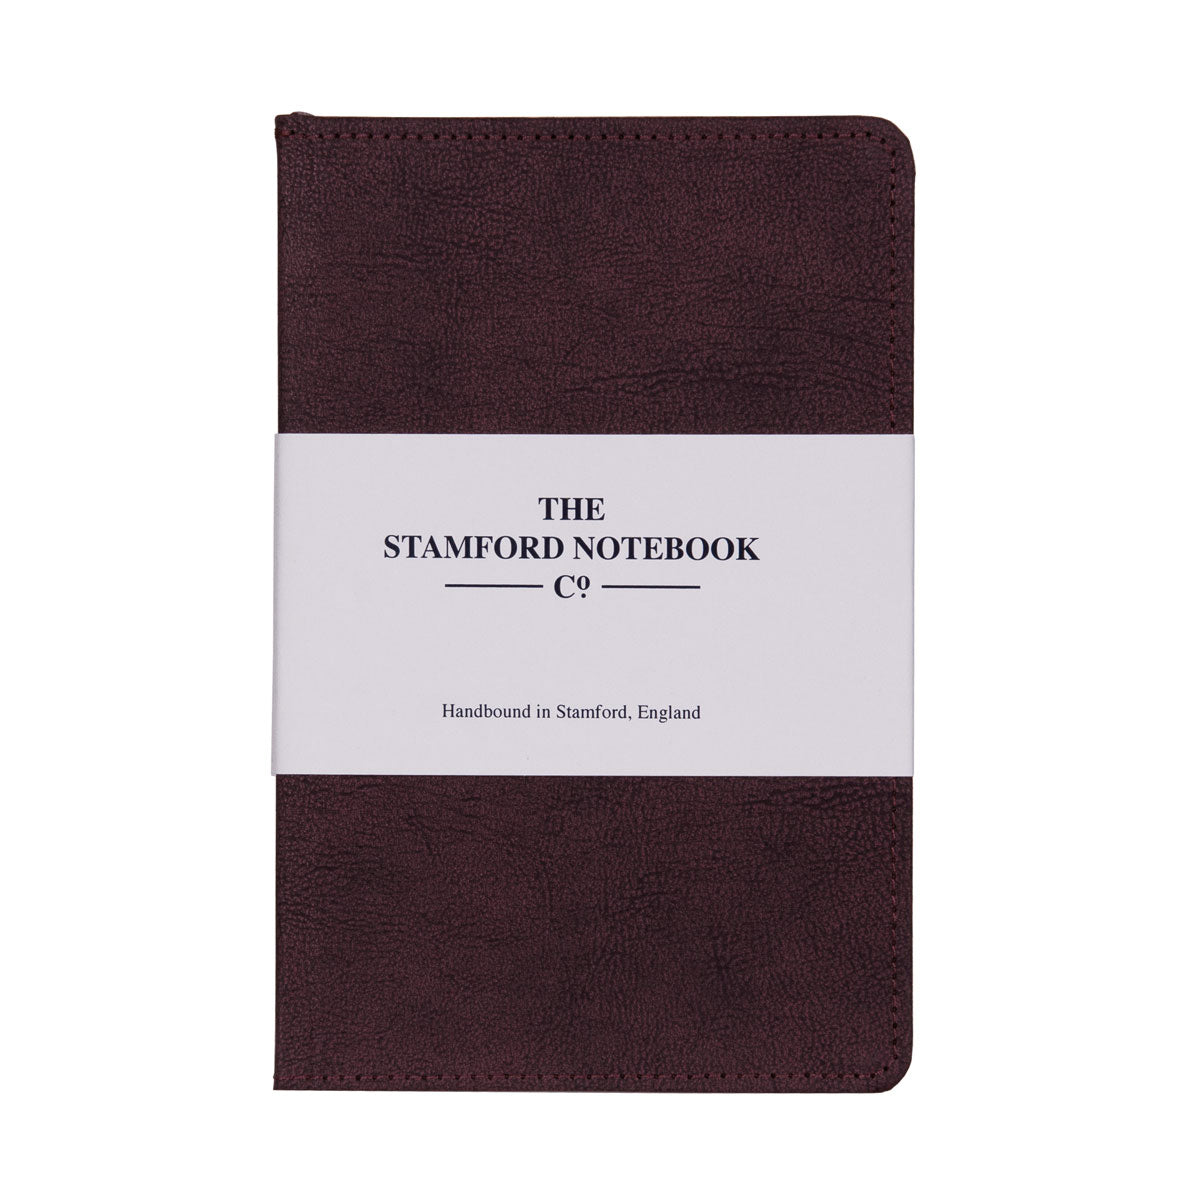 Vintage stitched Recycled Leather Notebook in Plum